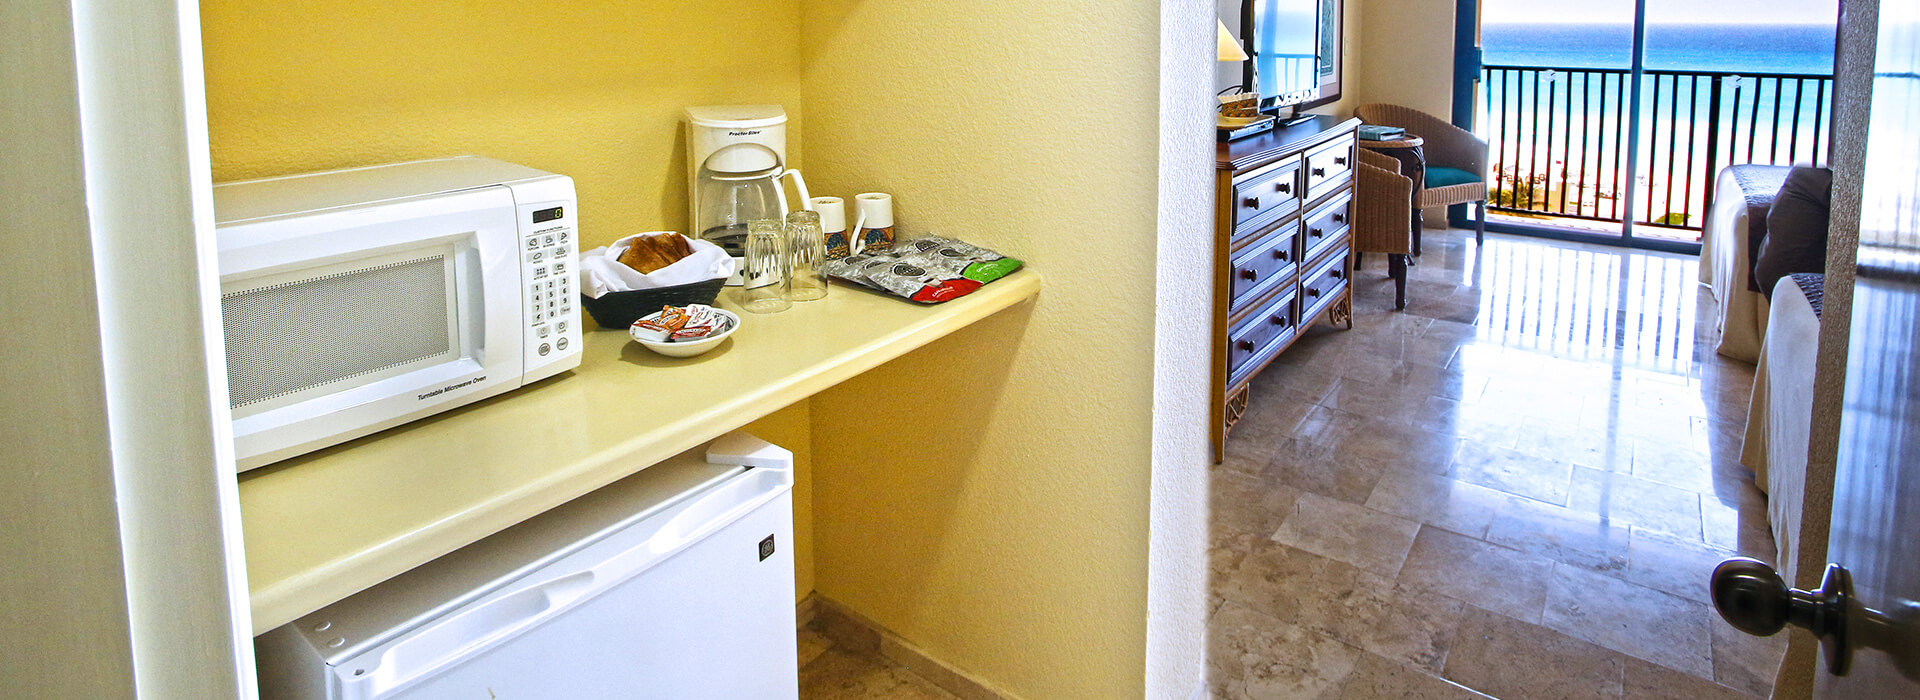 Ocean View Junior Suite fully equipped including kitchen appliances